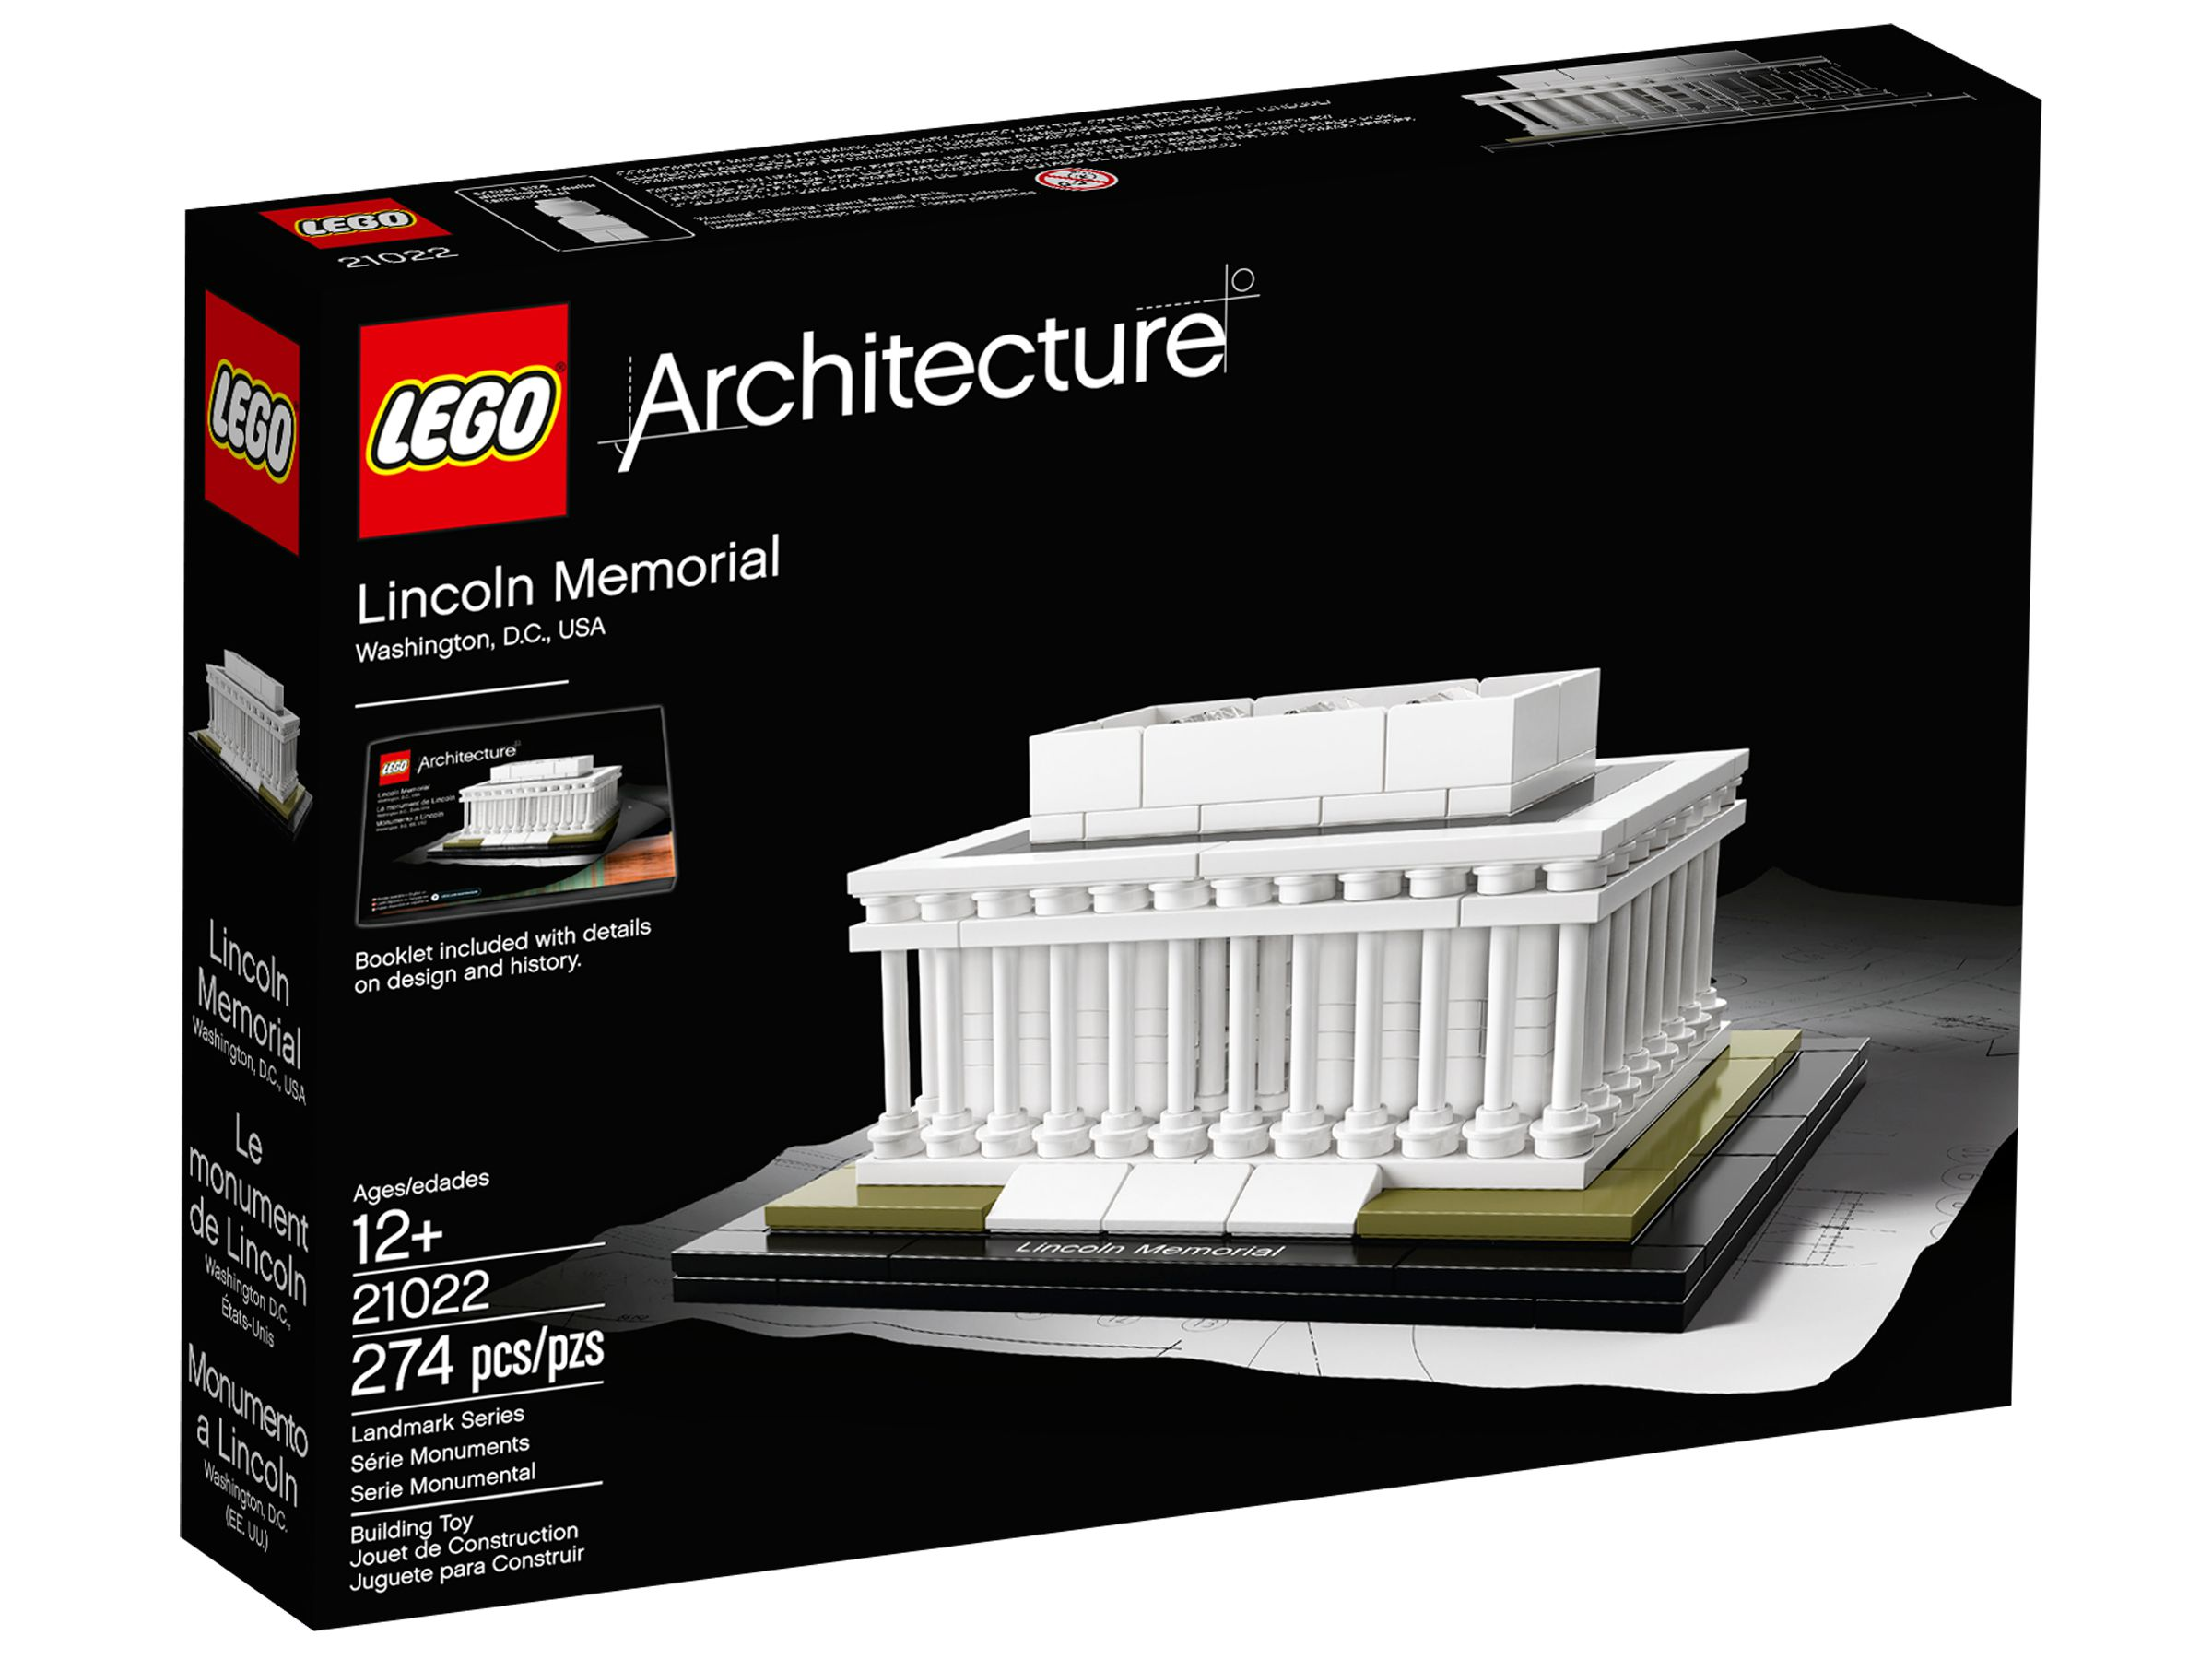 LEGO Architecture 21022 Lincoln Memorial LEGO_21022_alt1.jpg